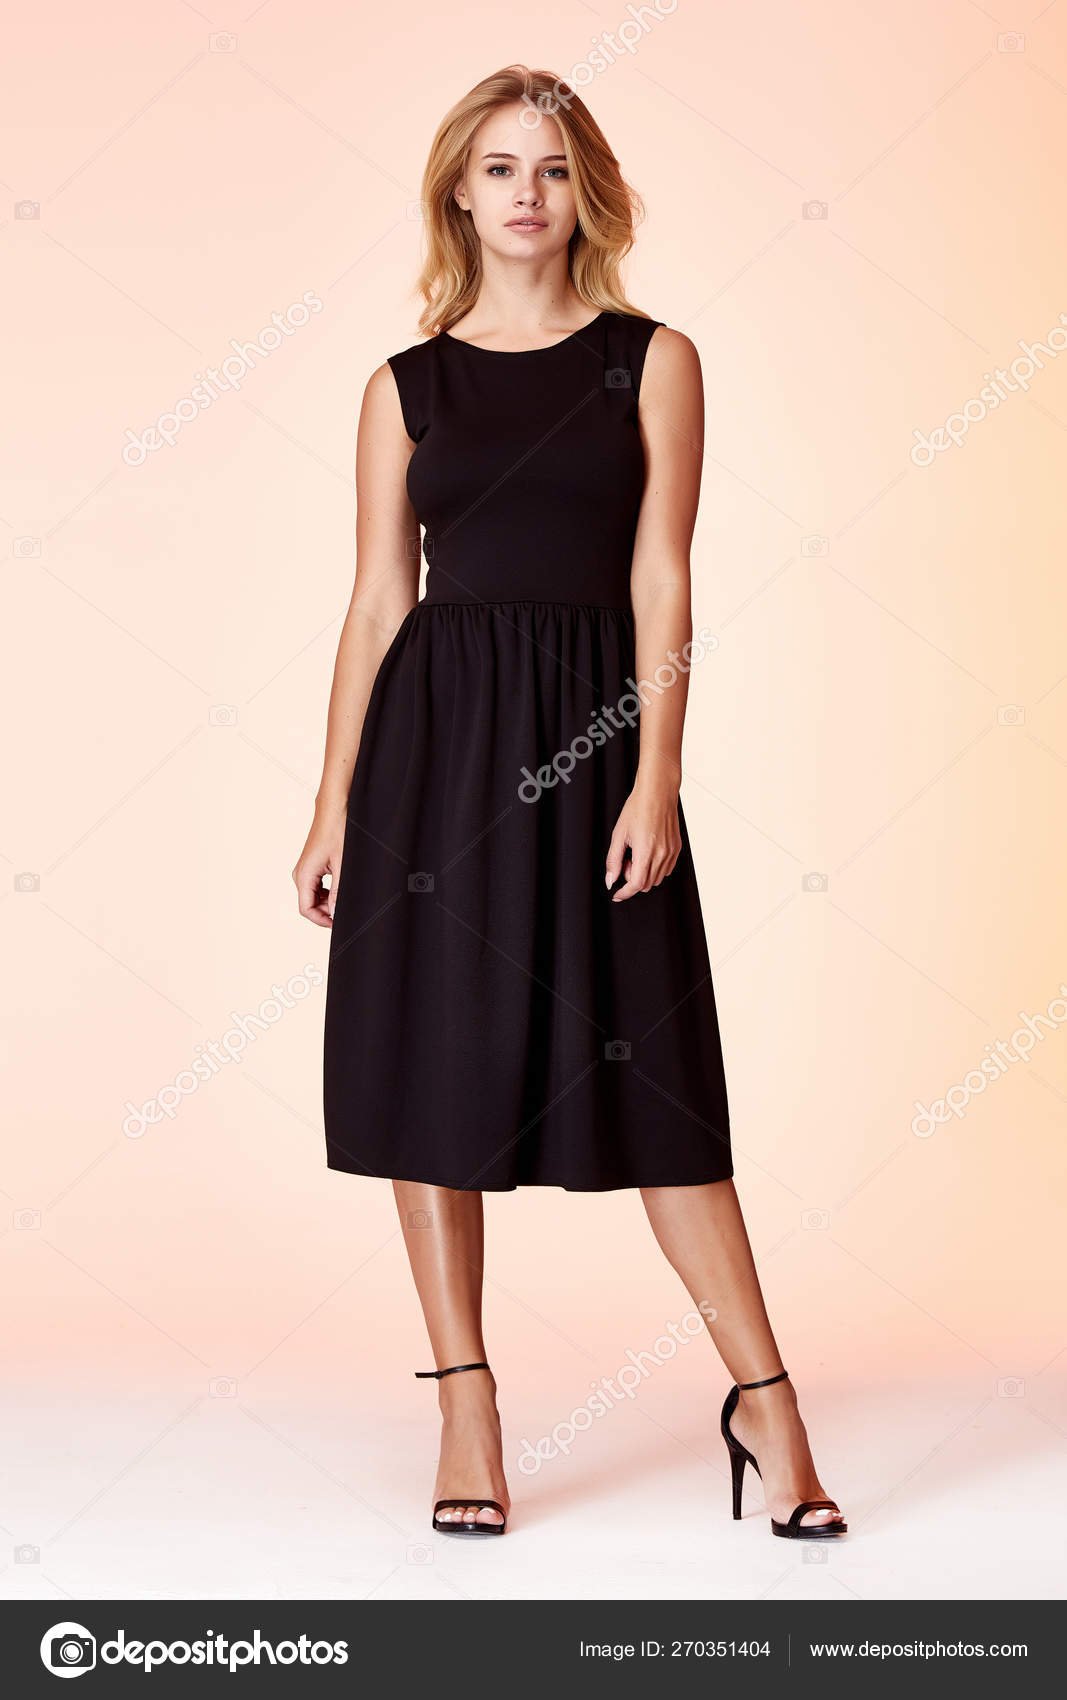 49238f2f32dda Beauty woman model wear stylish design trend clothing black skinny dress  casual formal office style for work meeting walk party blond hair makeup  party ...